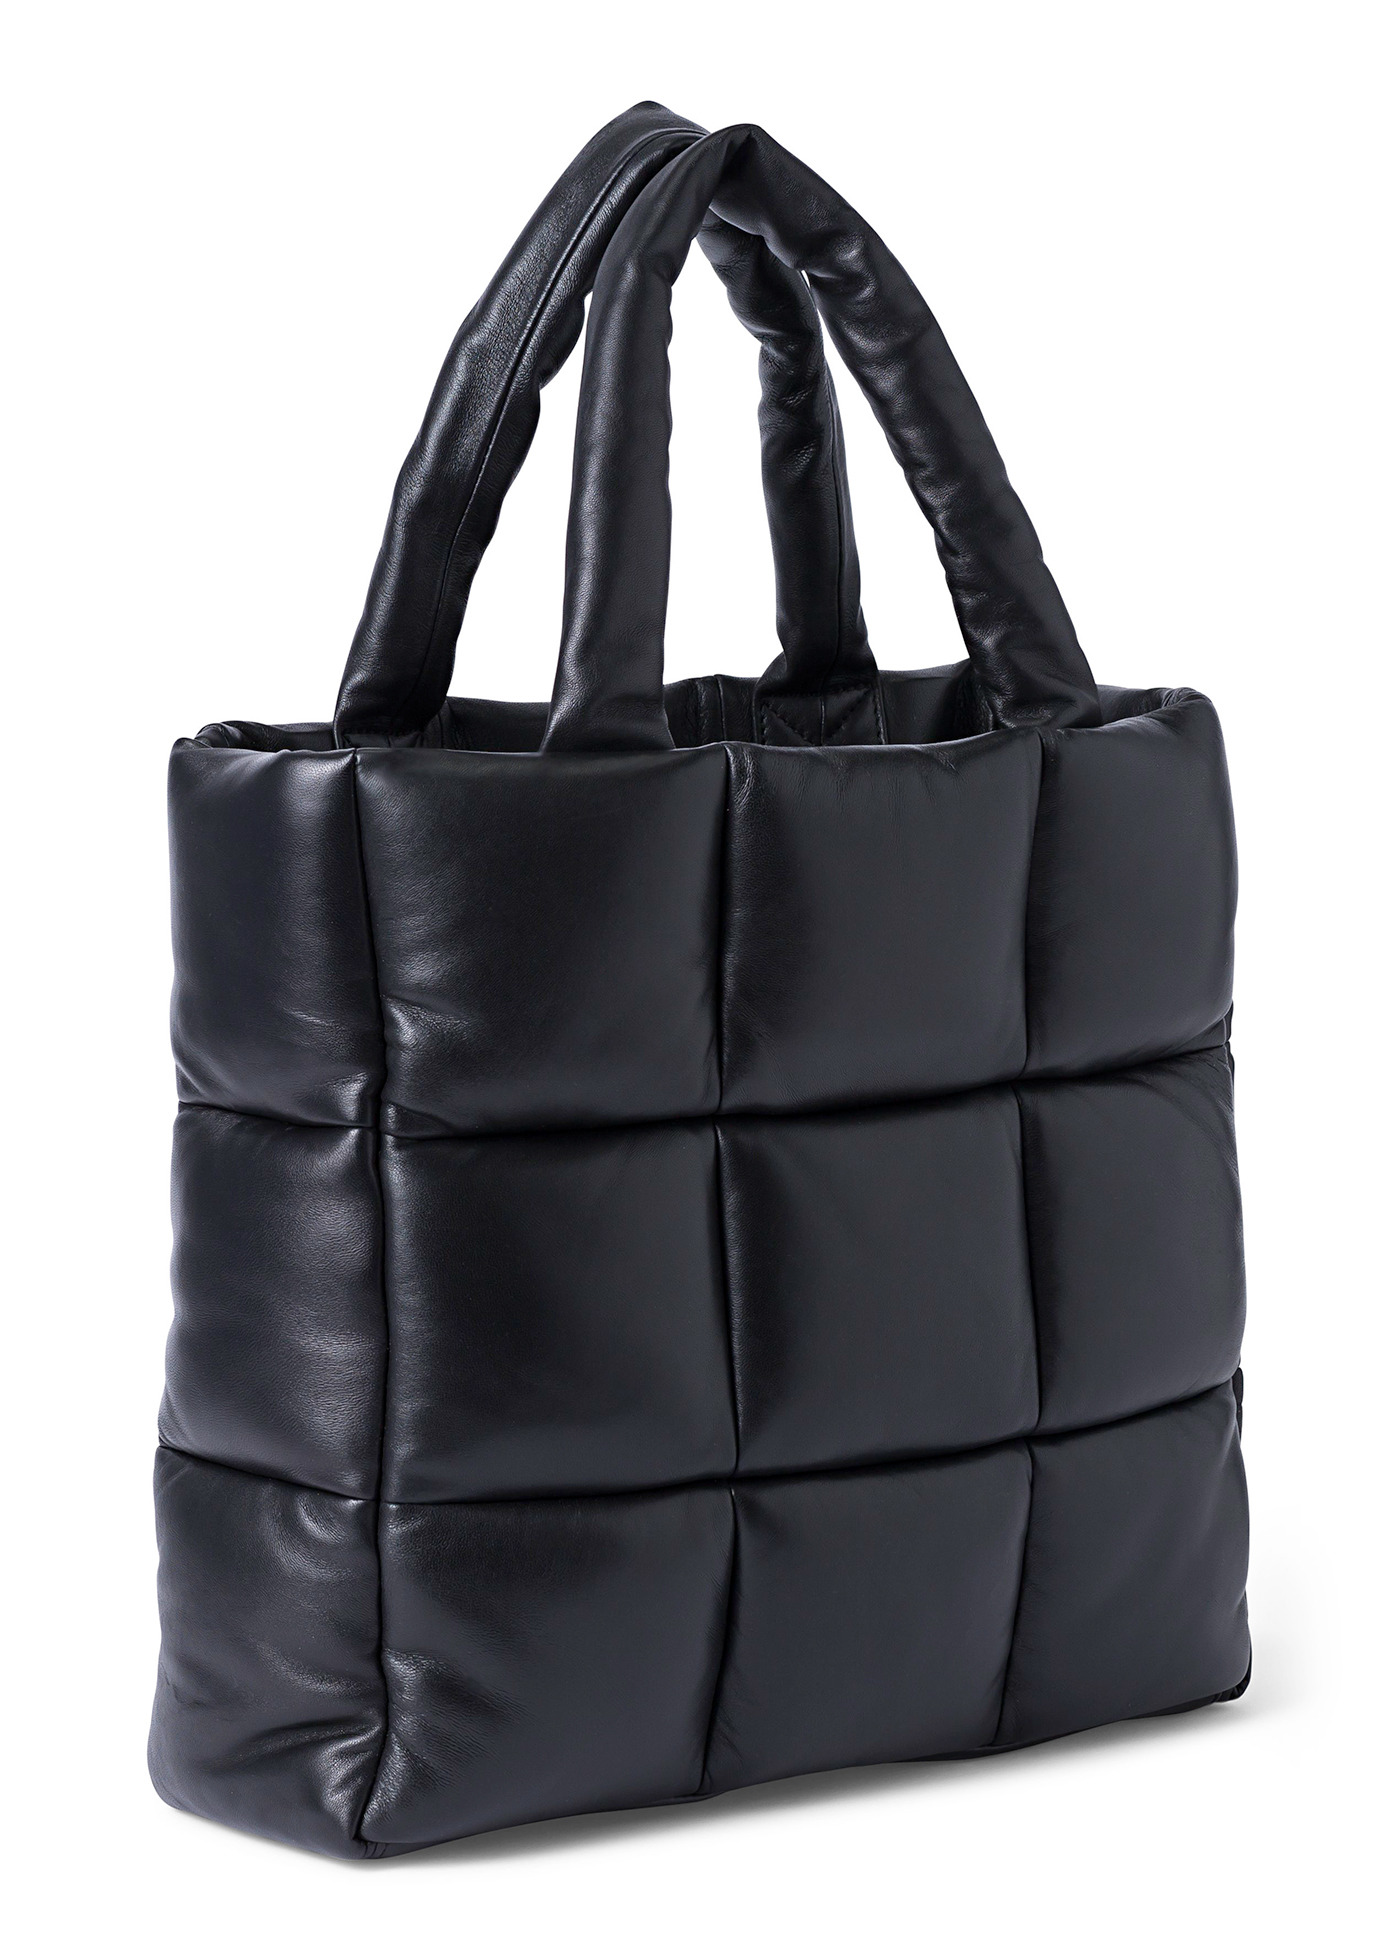 Assante Puffy Leather Bag image number 1